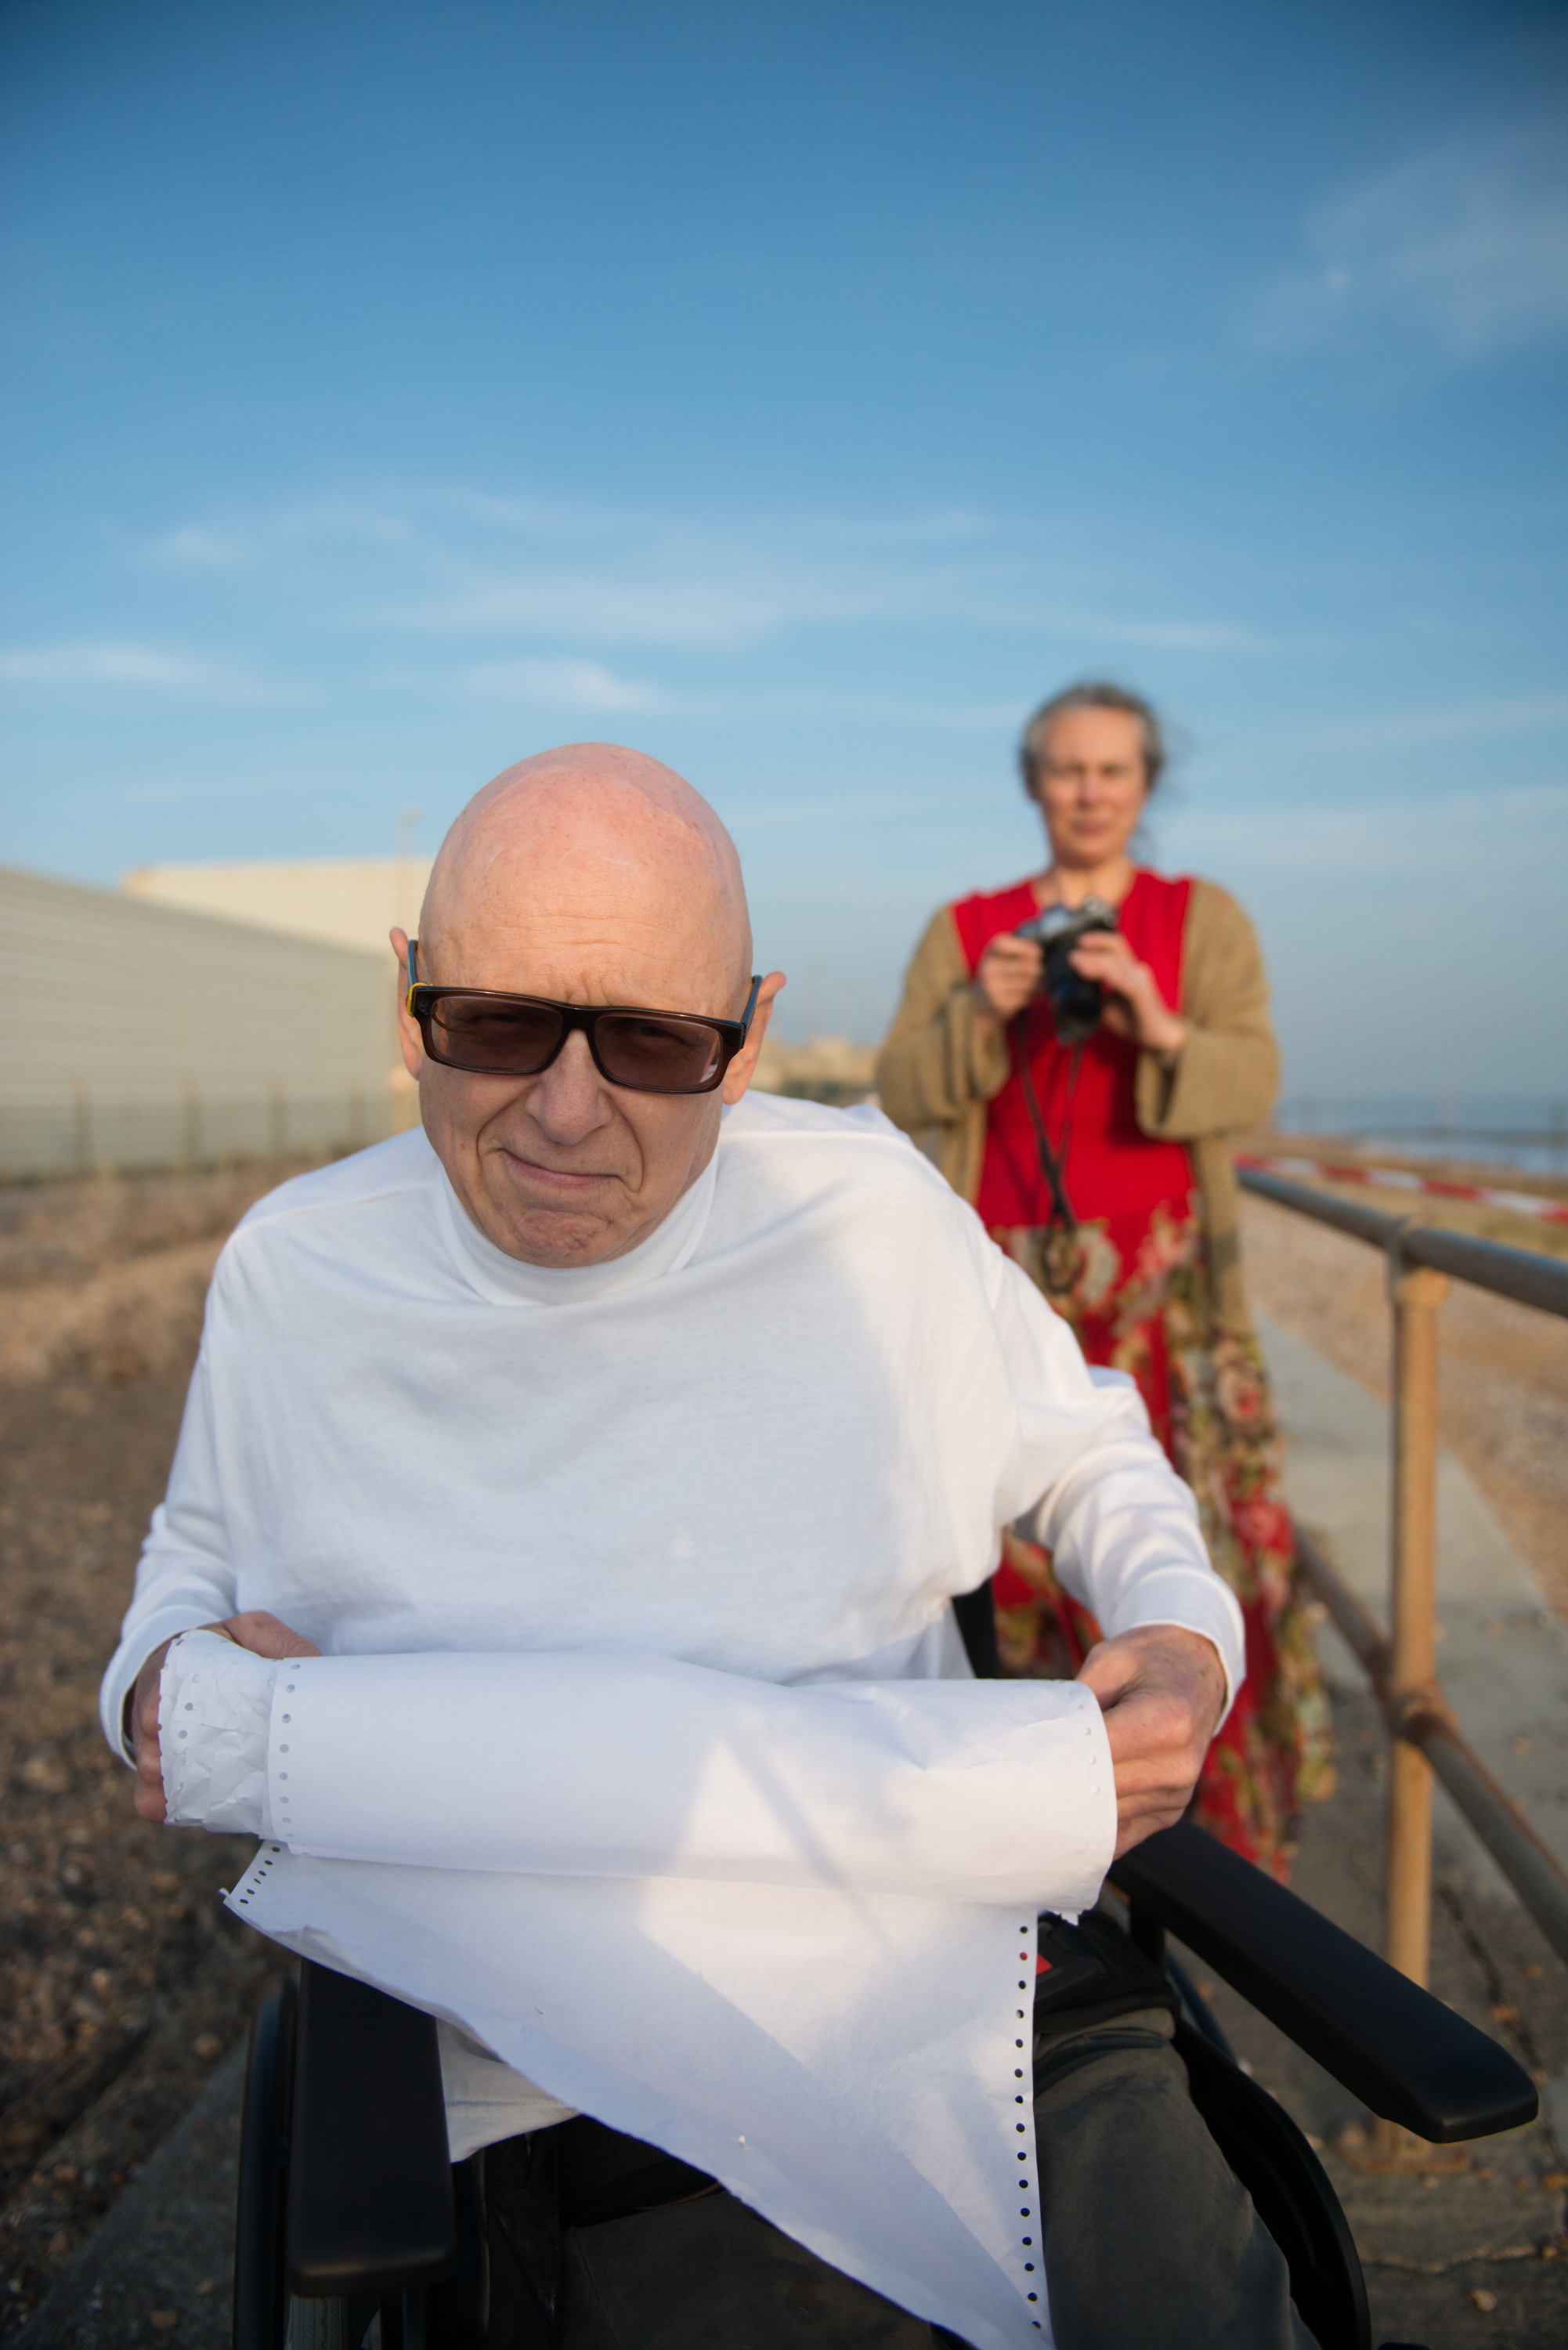 This photograph of Buz Williams and his wife Debbie Green was taken at the end of a shoot by Clare Park, for their project 'Buz and Parkinson's' a narrative photographic project developed over the past twenty years. It was a pleasure being in amongst them whilst they were working together by the sea.